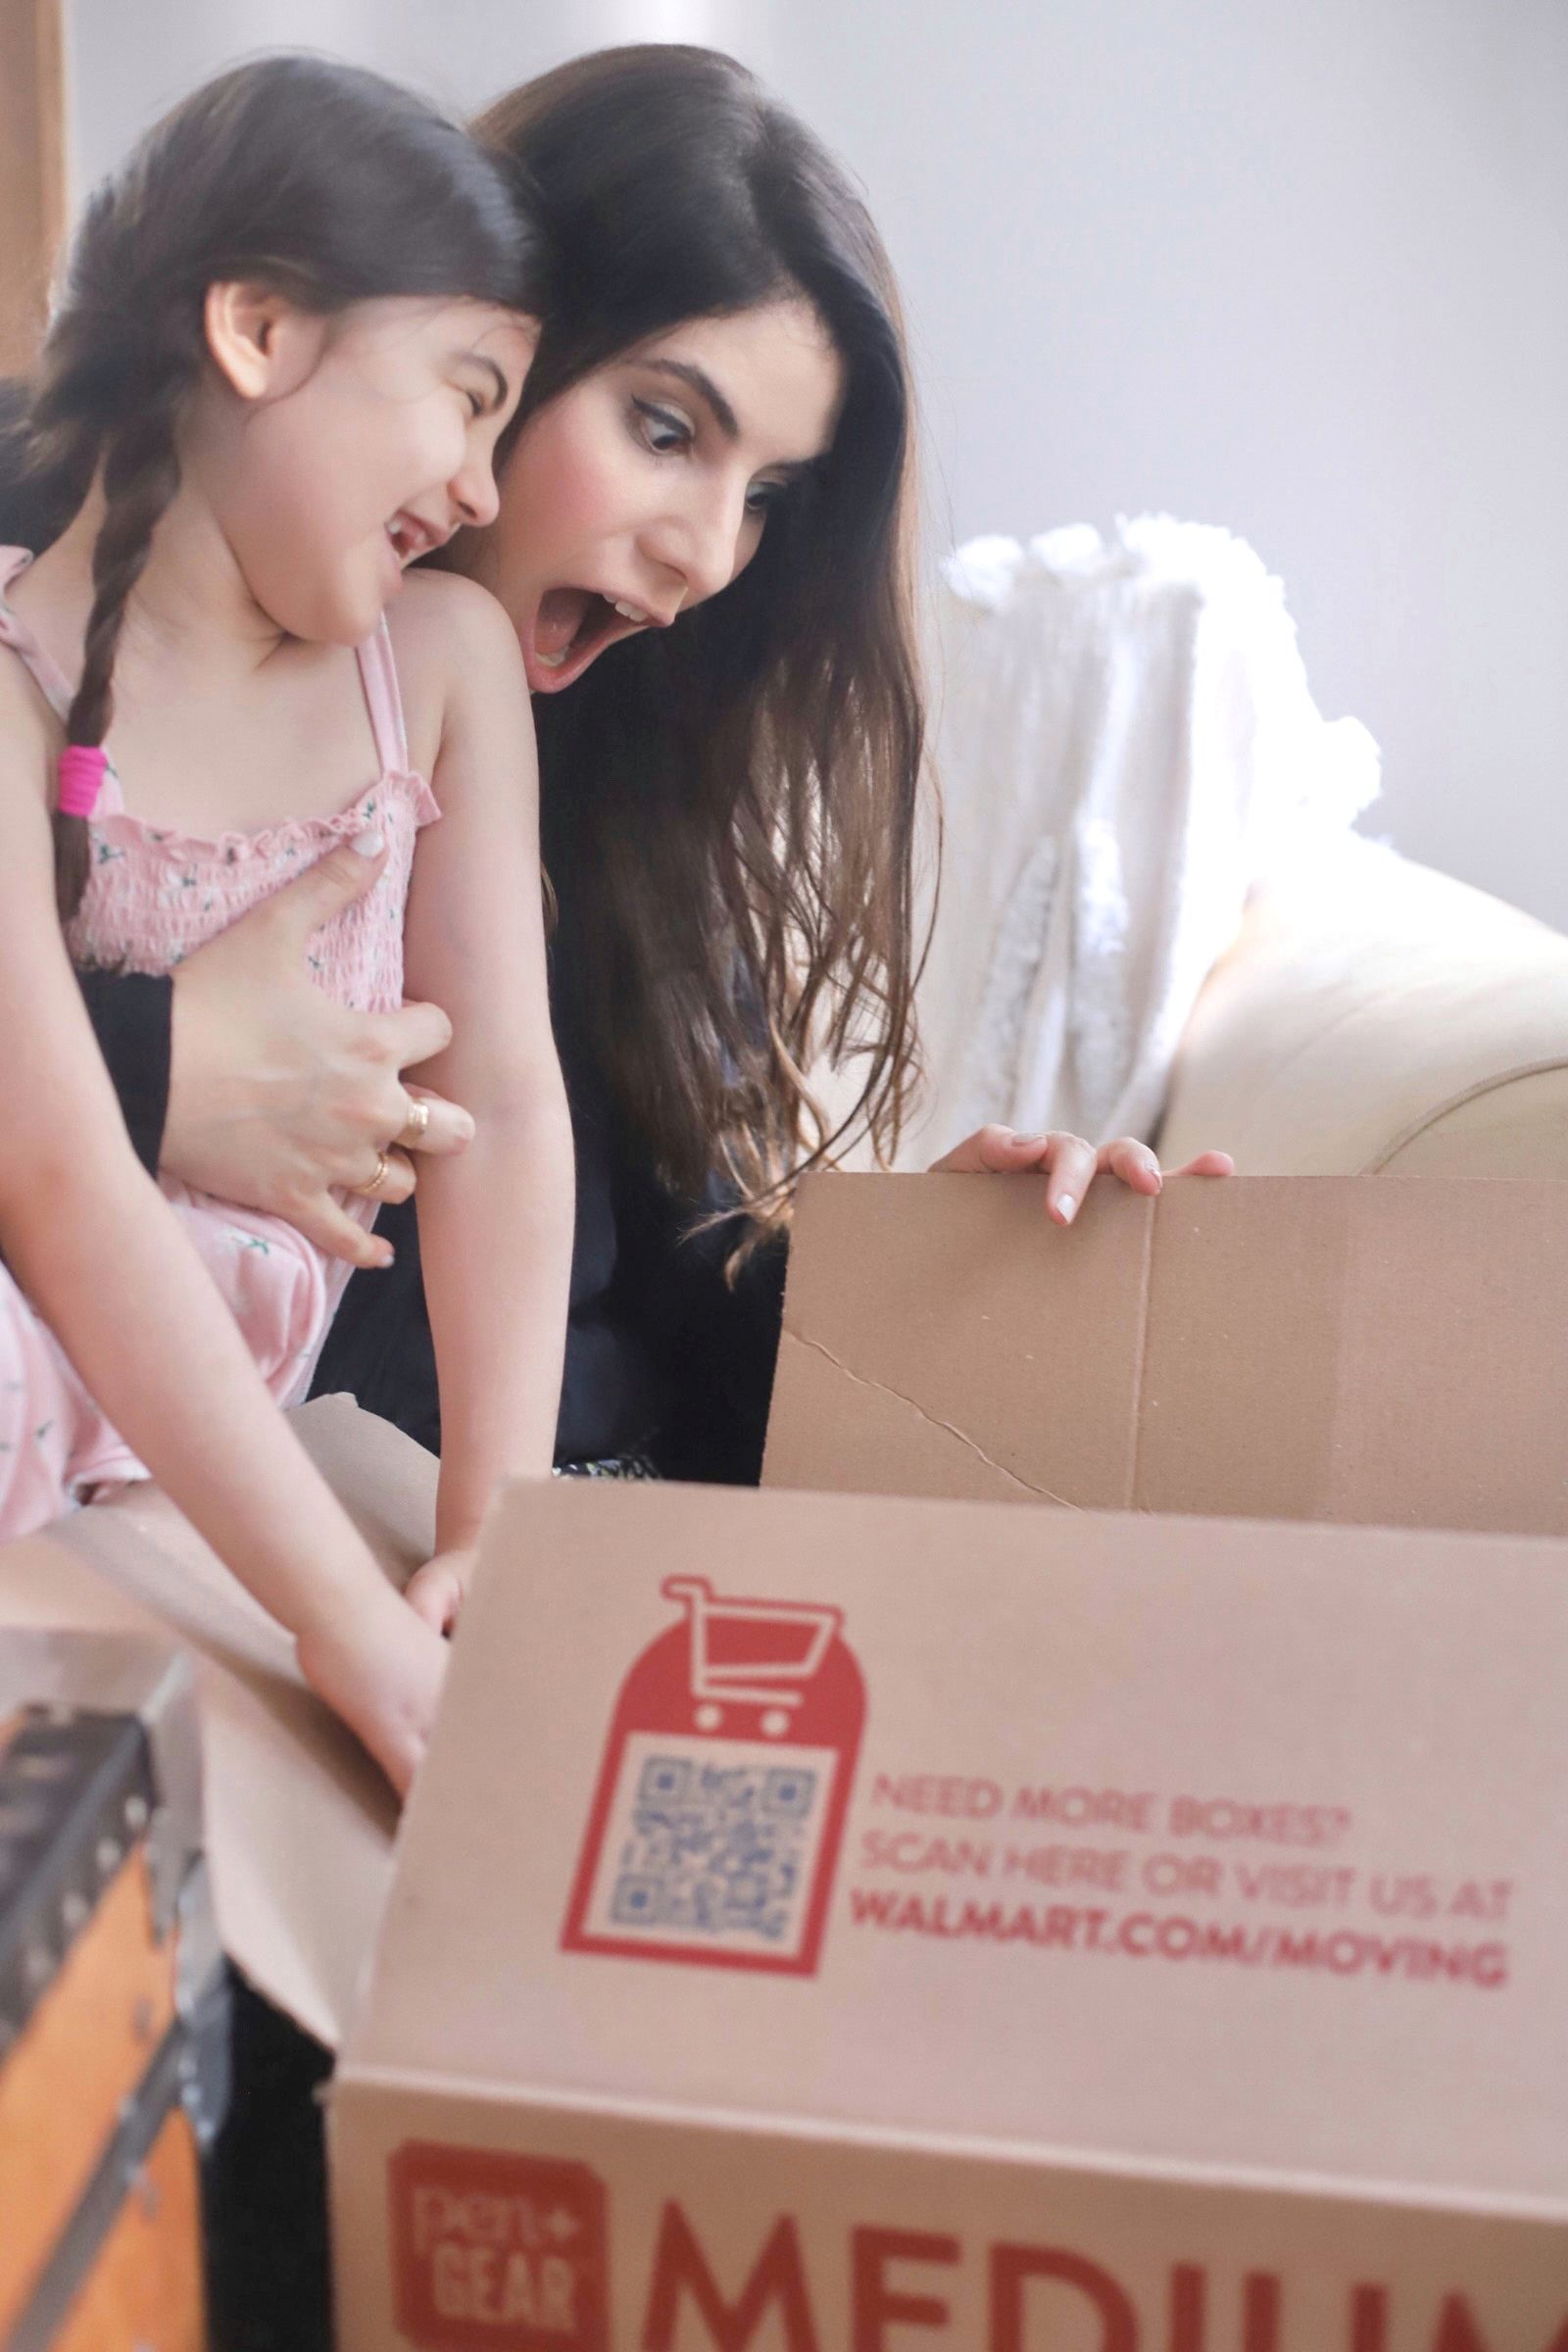 mother and daughter looking at a box in shock